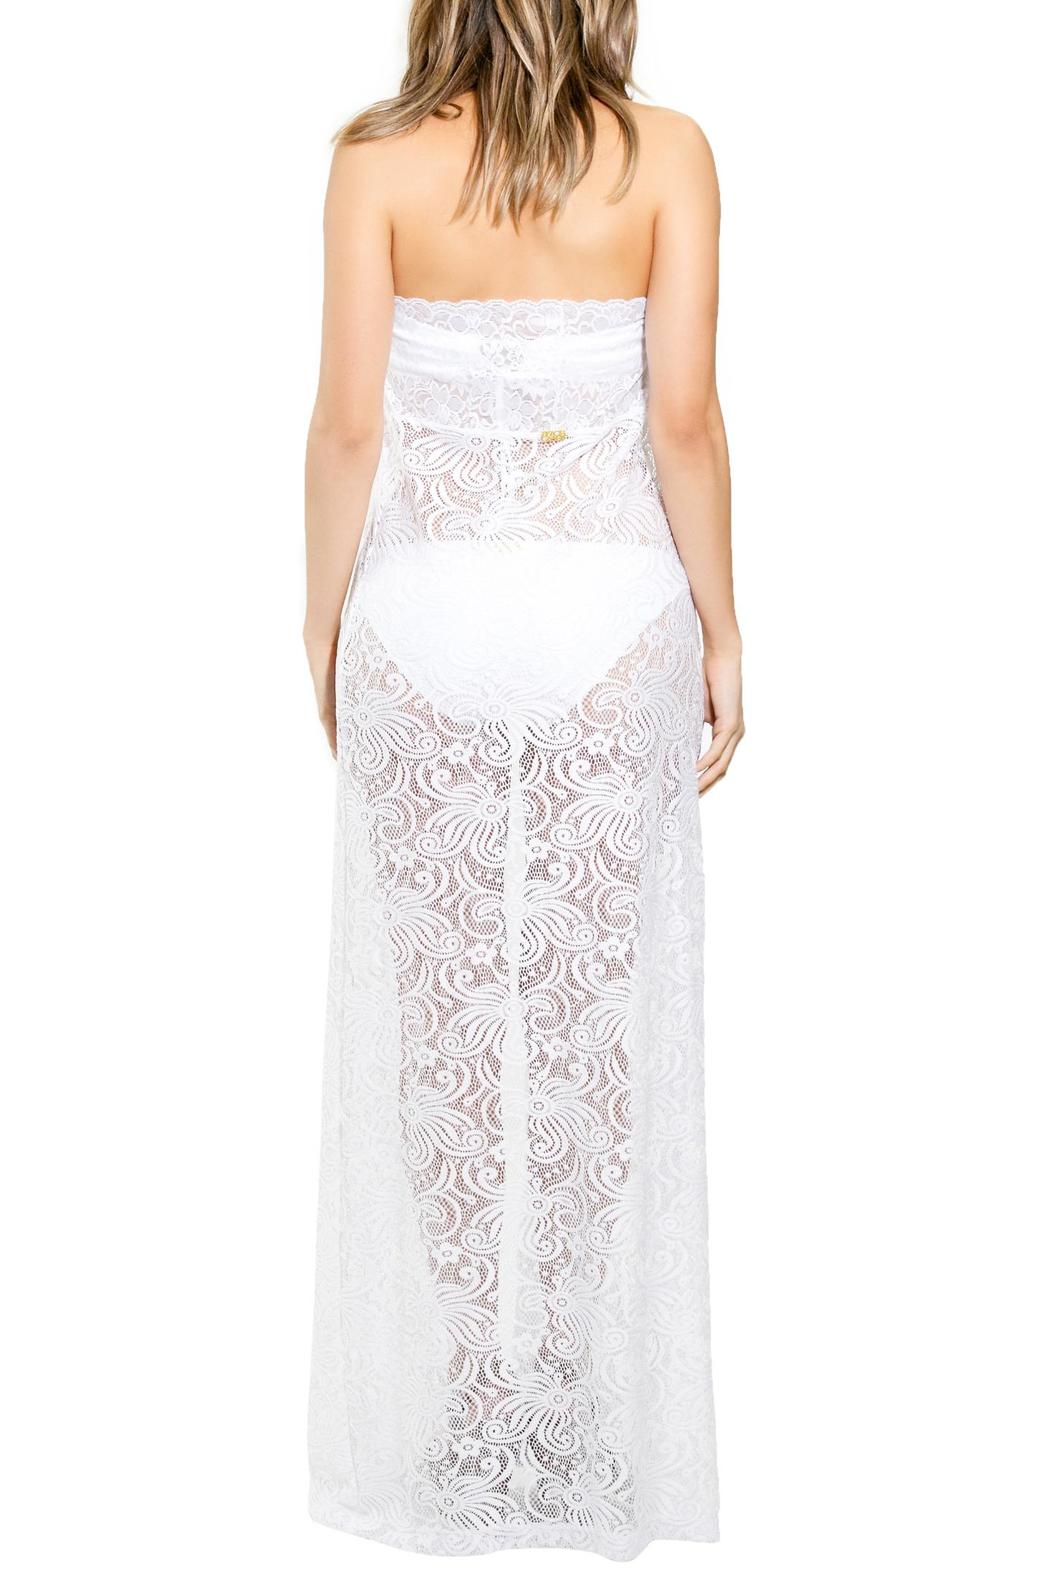 BeachCandy Long Lace Coverup - Side Cropped Image